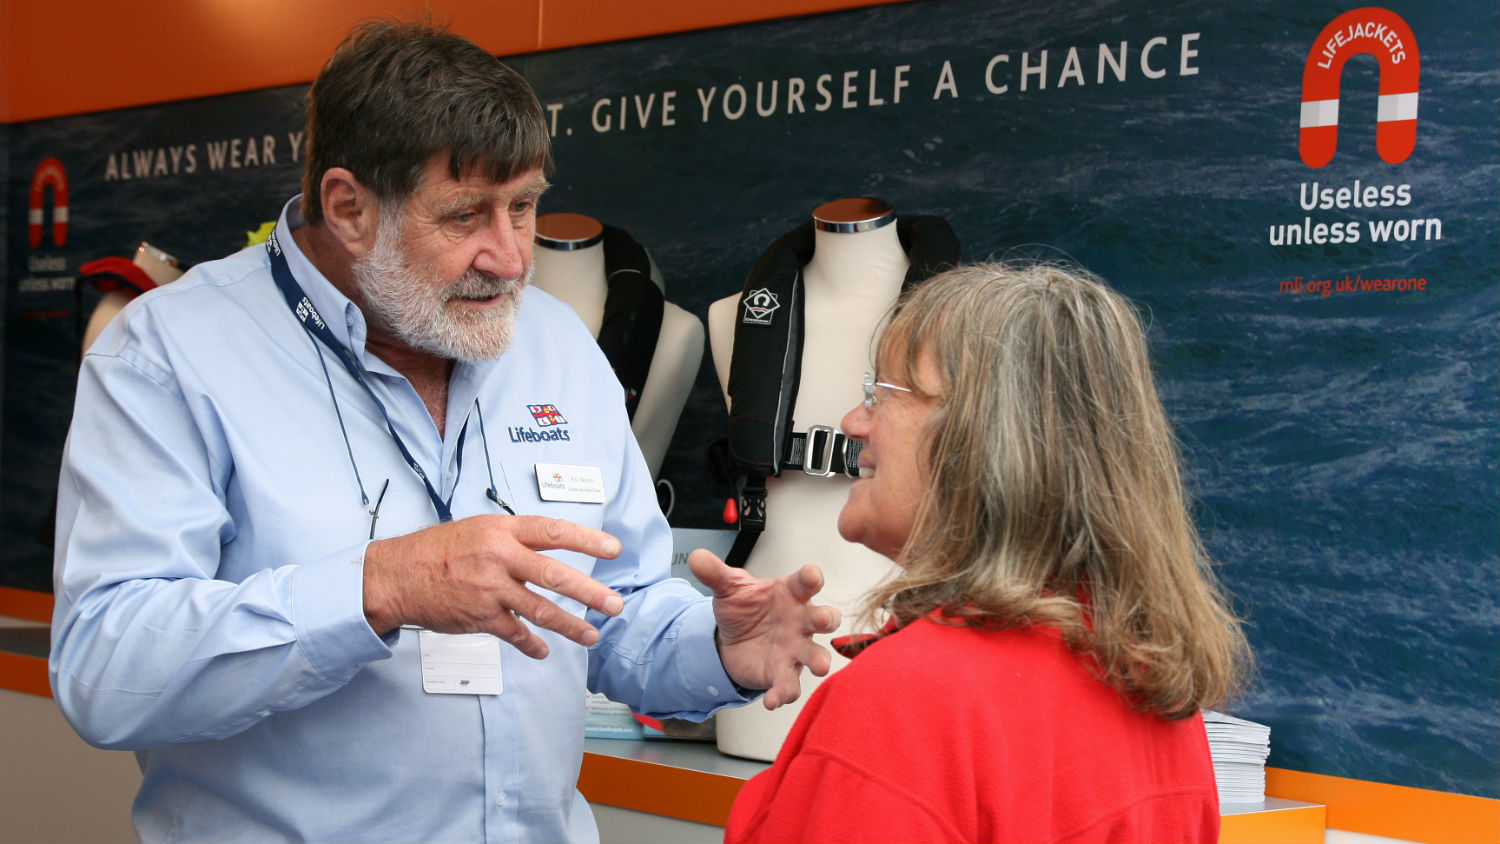 RNLI Community Safety Volunteer Bill Walton giving advice at Southampton Boat Show